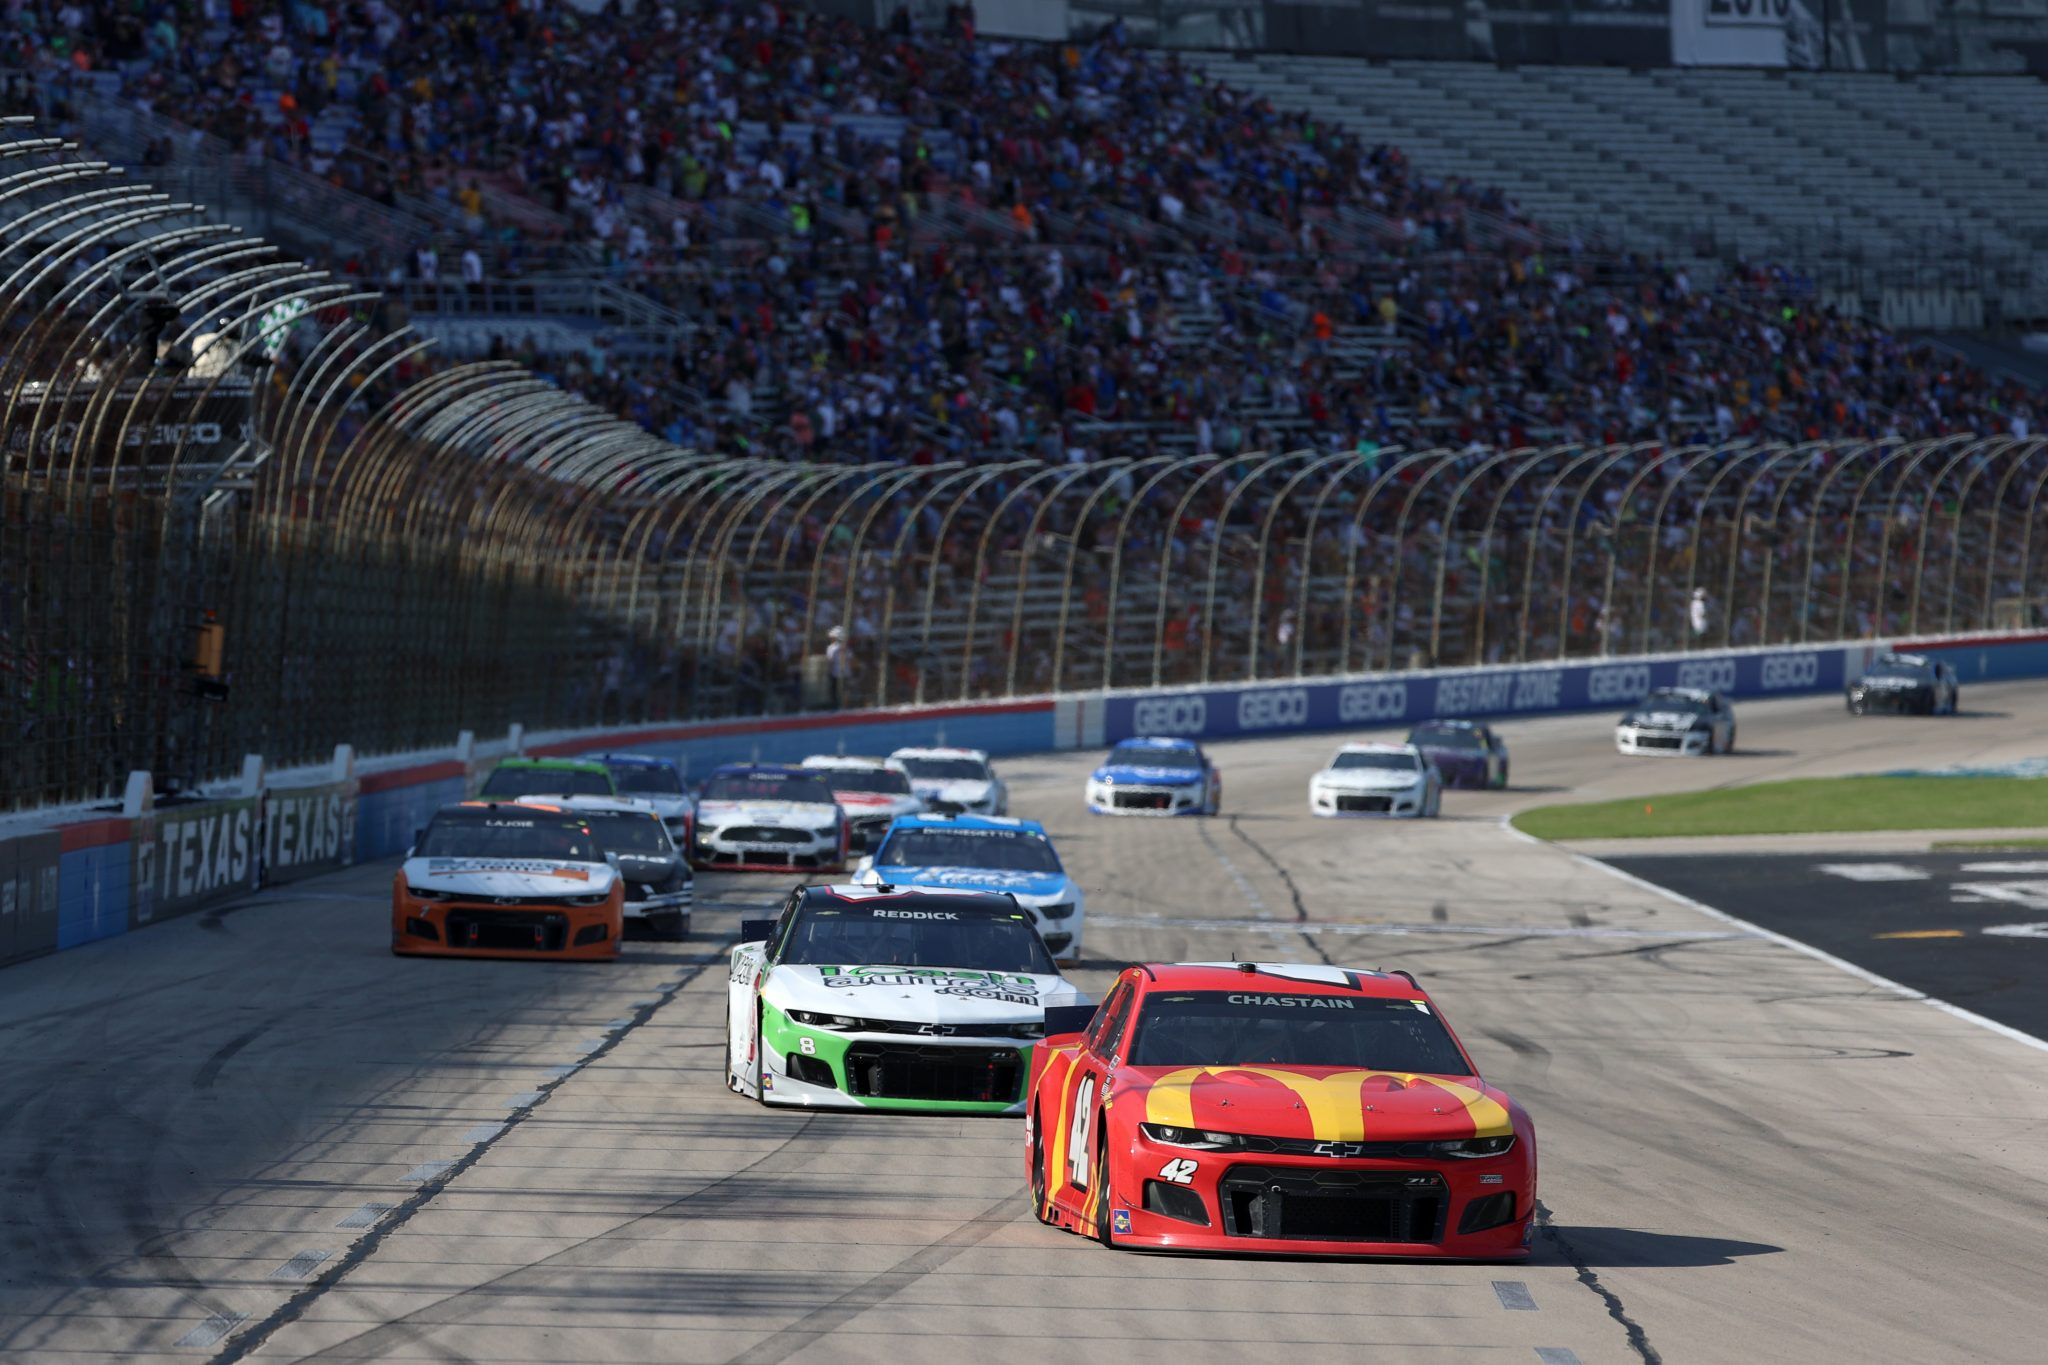 FORT WORTH, TEXAS - JUNE 13: Ross Chastain, driver of the #42 McDonald's Chevrolet, leads the field during the NASCAR All-Star Open at Texas Motor Speedway on June 13, 2021 in Fort Worth, Texas. (Photo by Carmen Mandato/Getty Images) | Getty Images